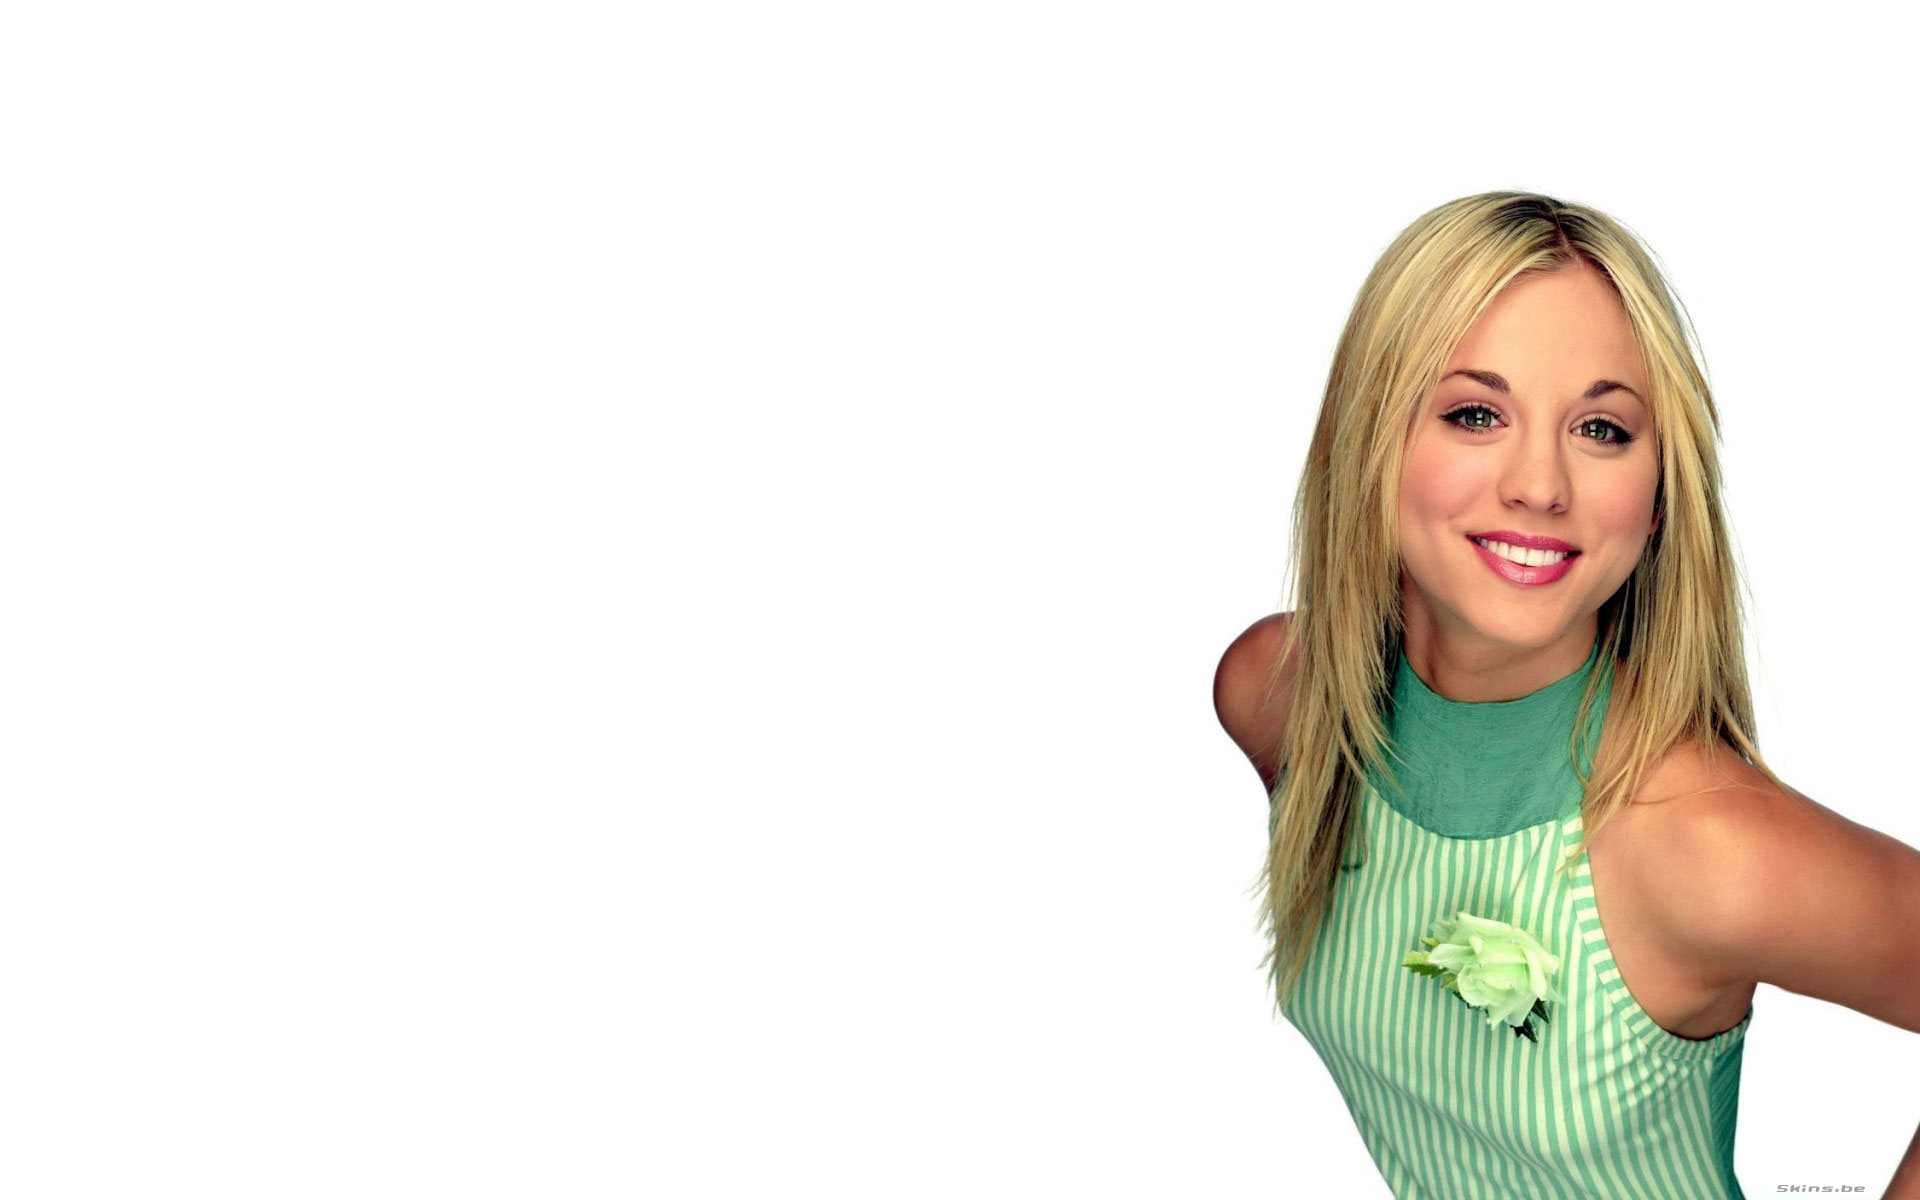 kaley cuoco images kaley hd wallpaper and background